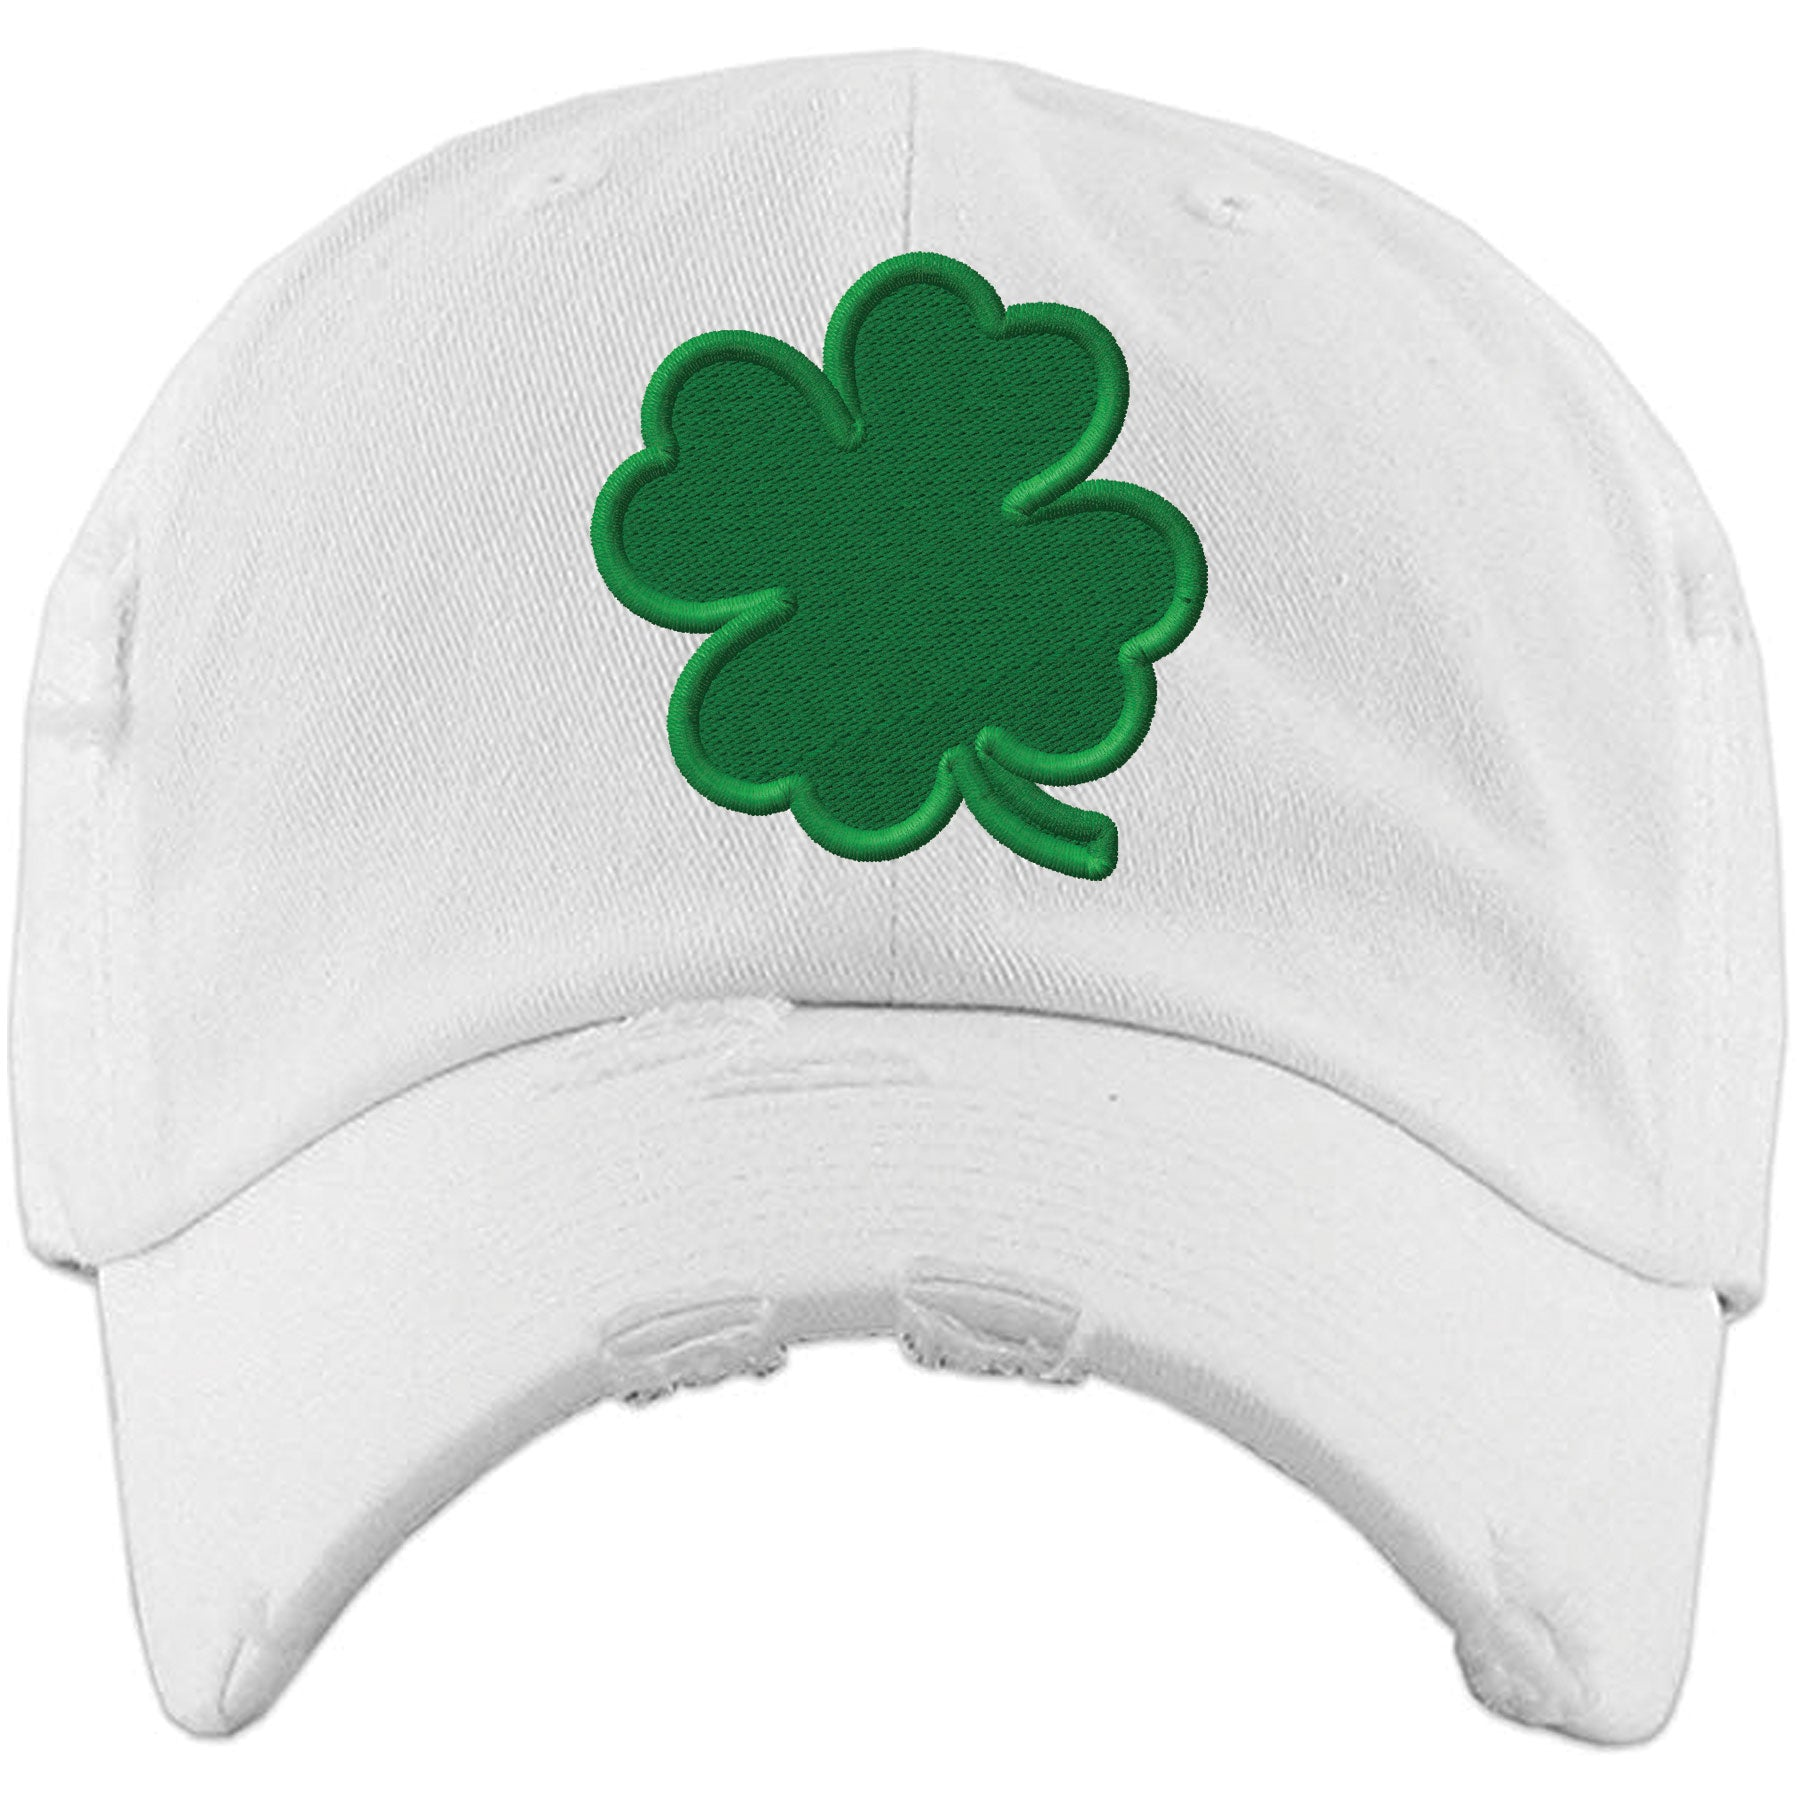 120895c1 Look great with funny St. Patrick's Day clothing and St. Patrick's Day  accessories from